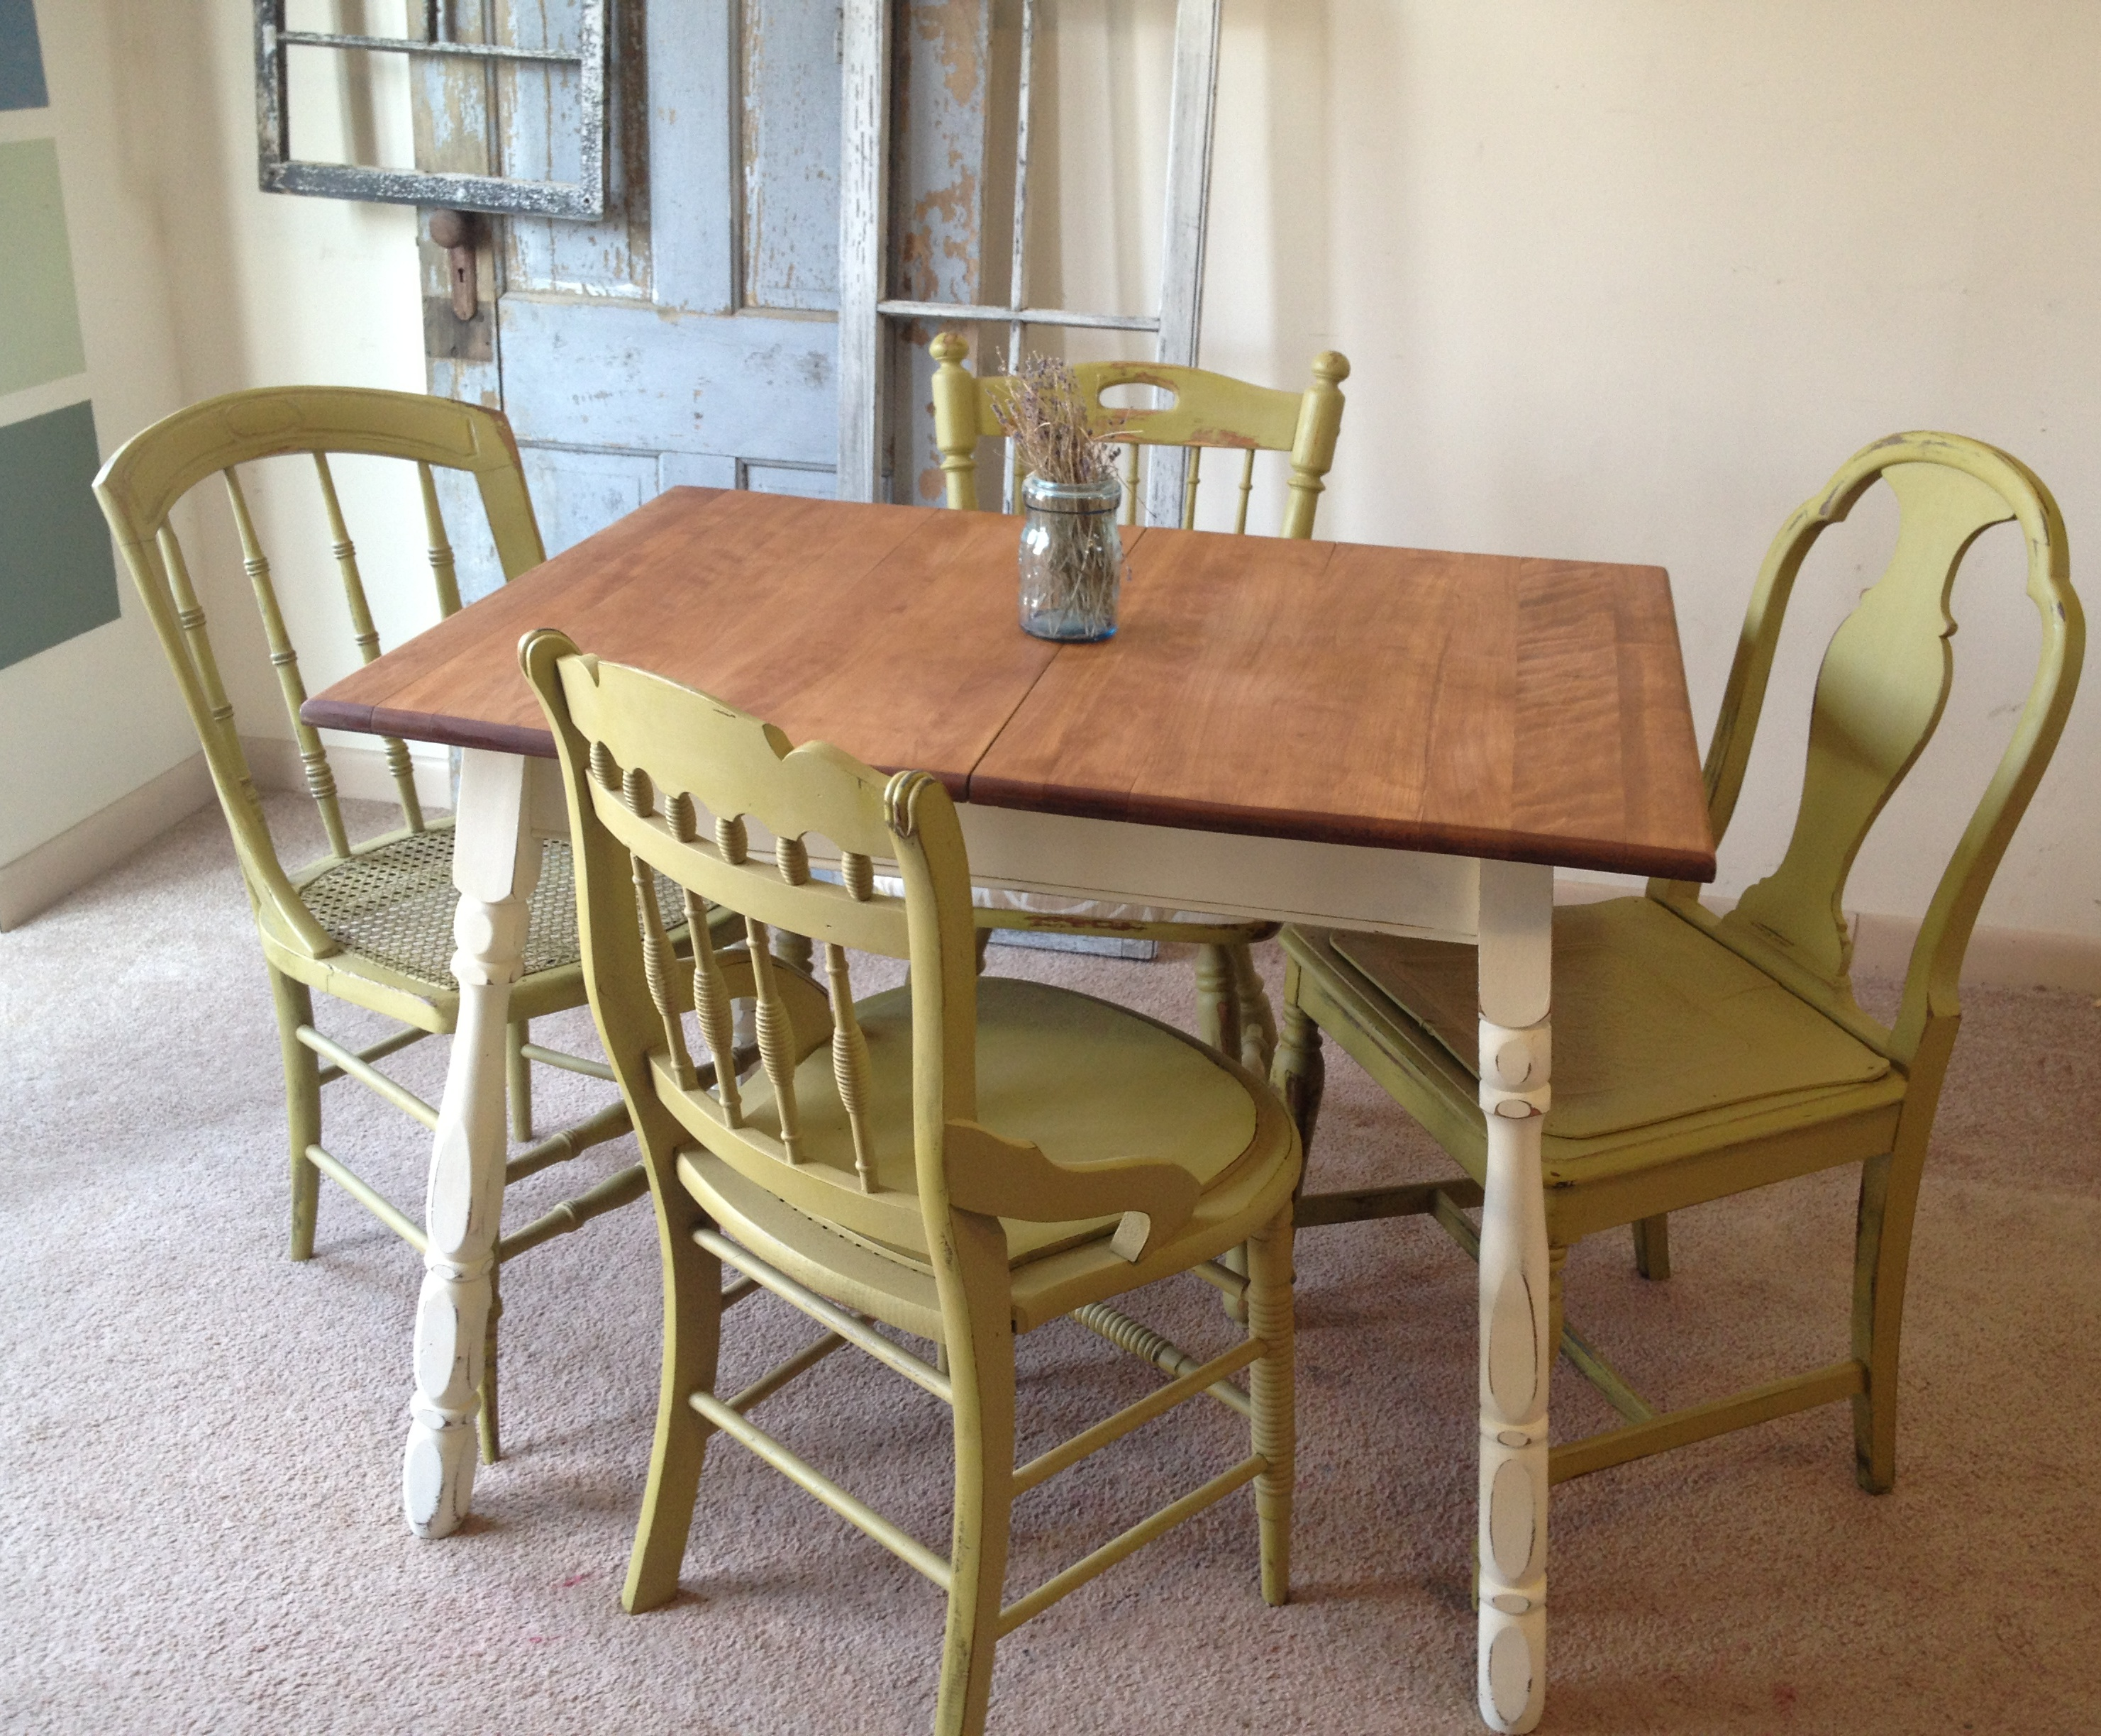 Black round kitchen table and chairs photo - 1